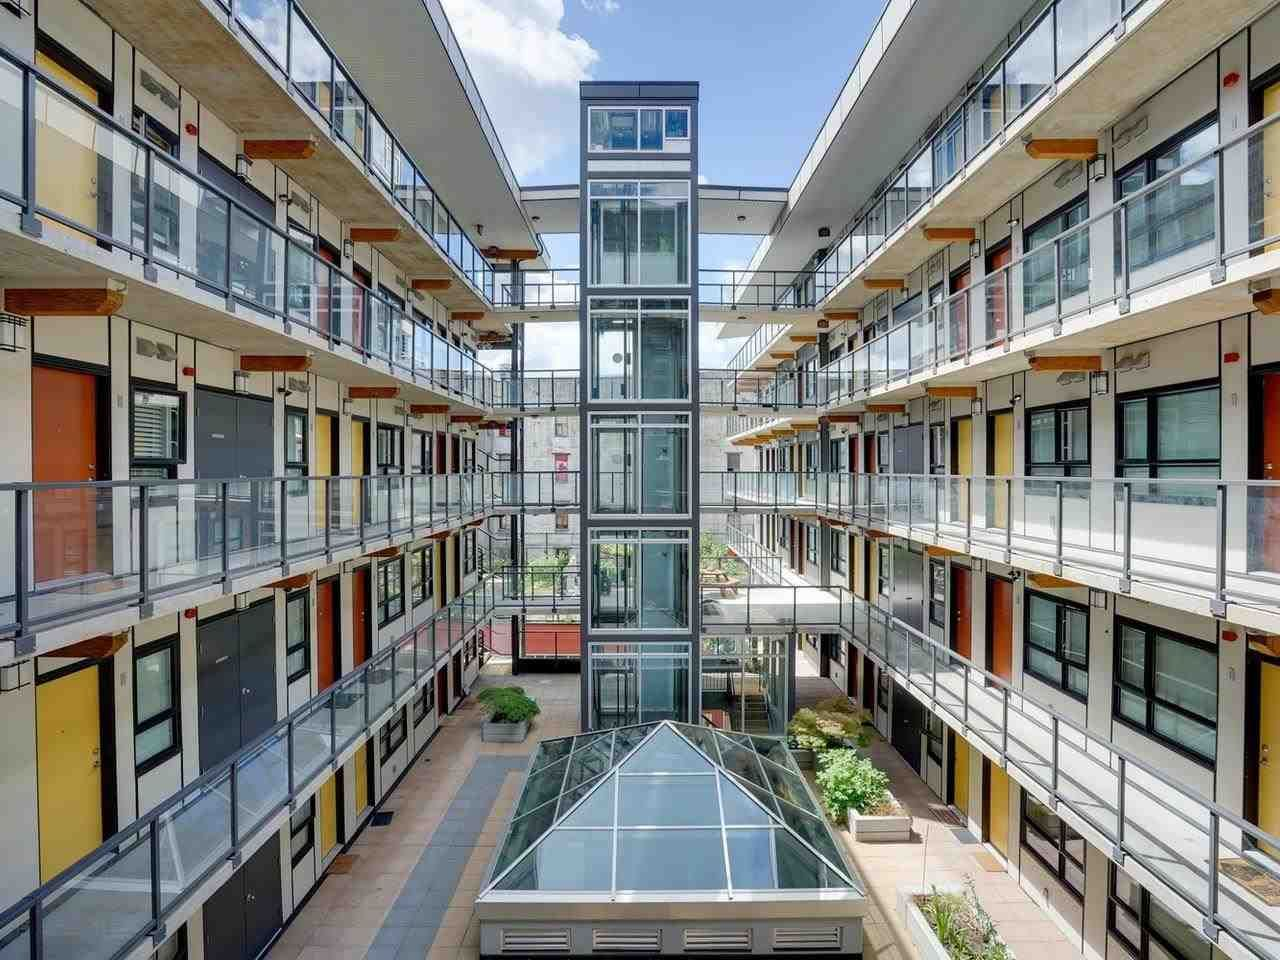 """Main Photo: 419 138 E HASTINGS Street in Vancouver: Downtown VE Condo for sale in """"Sequel 138"""" (Vancouver East)  : MLS®# R2591060"""